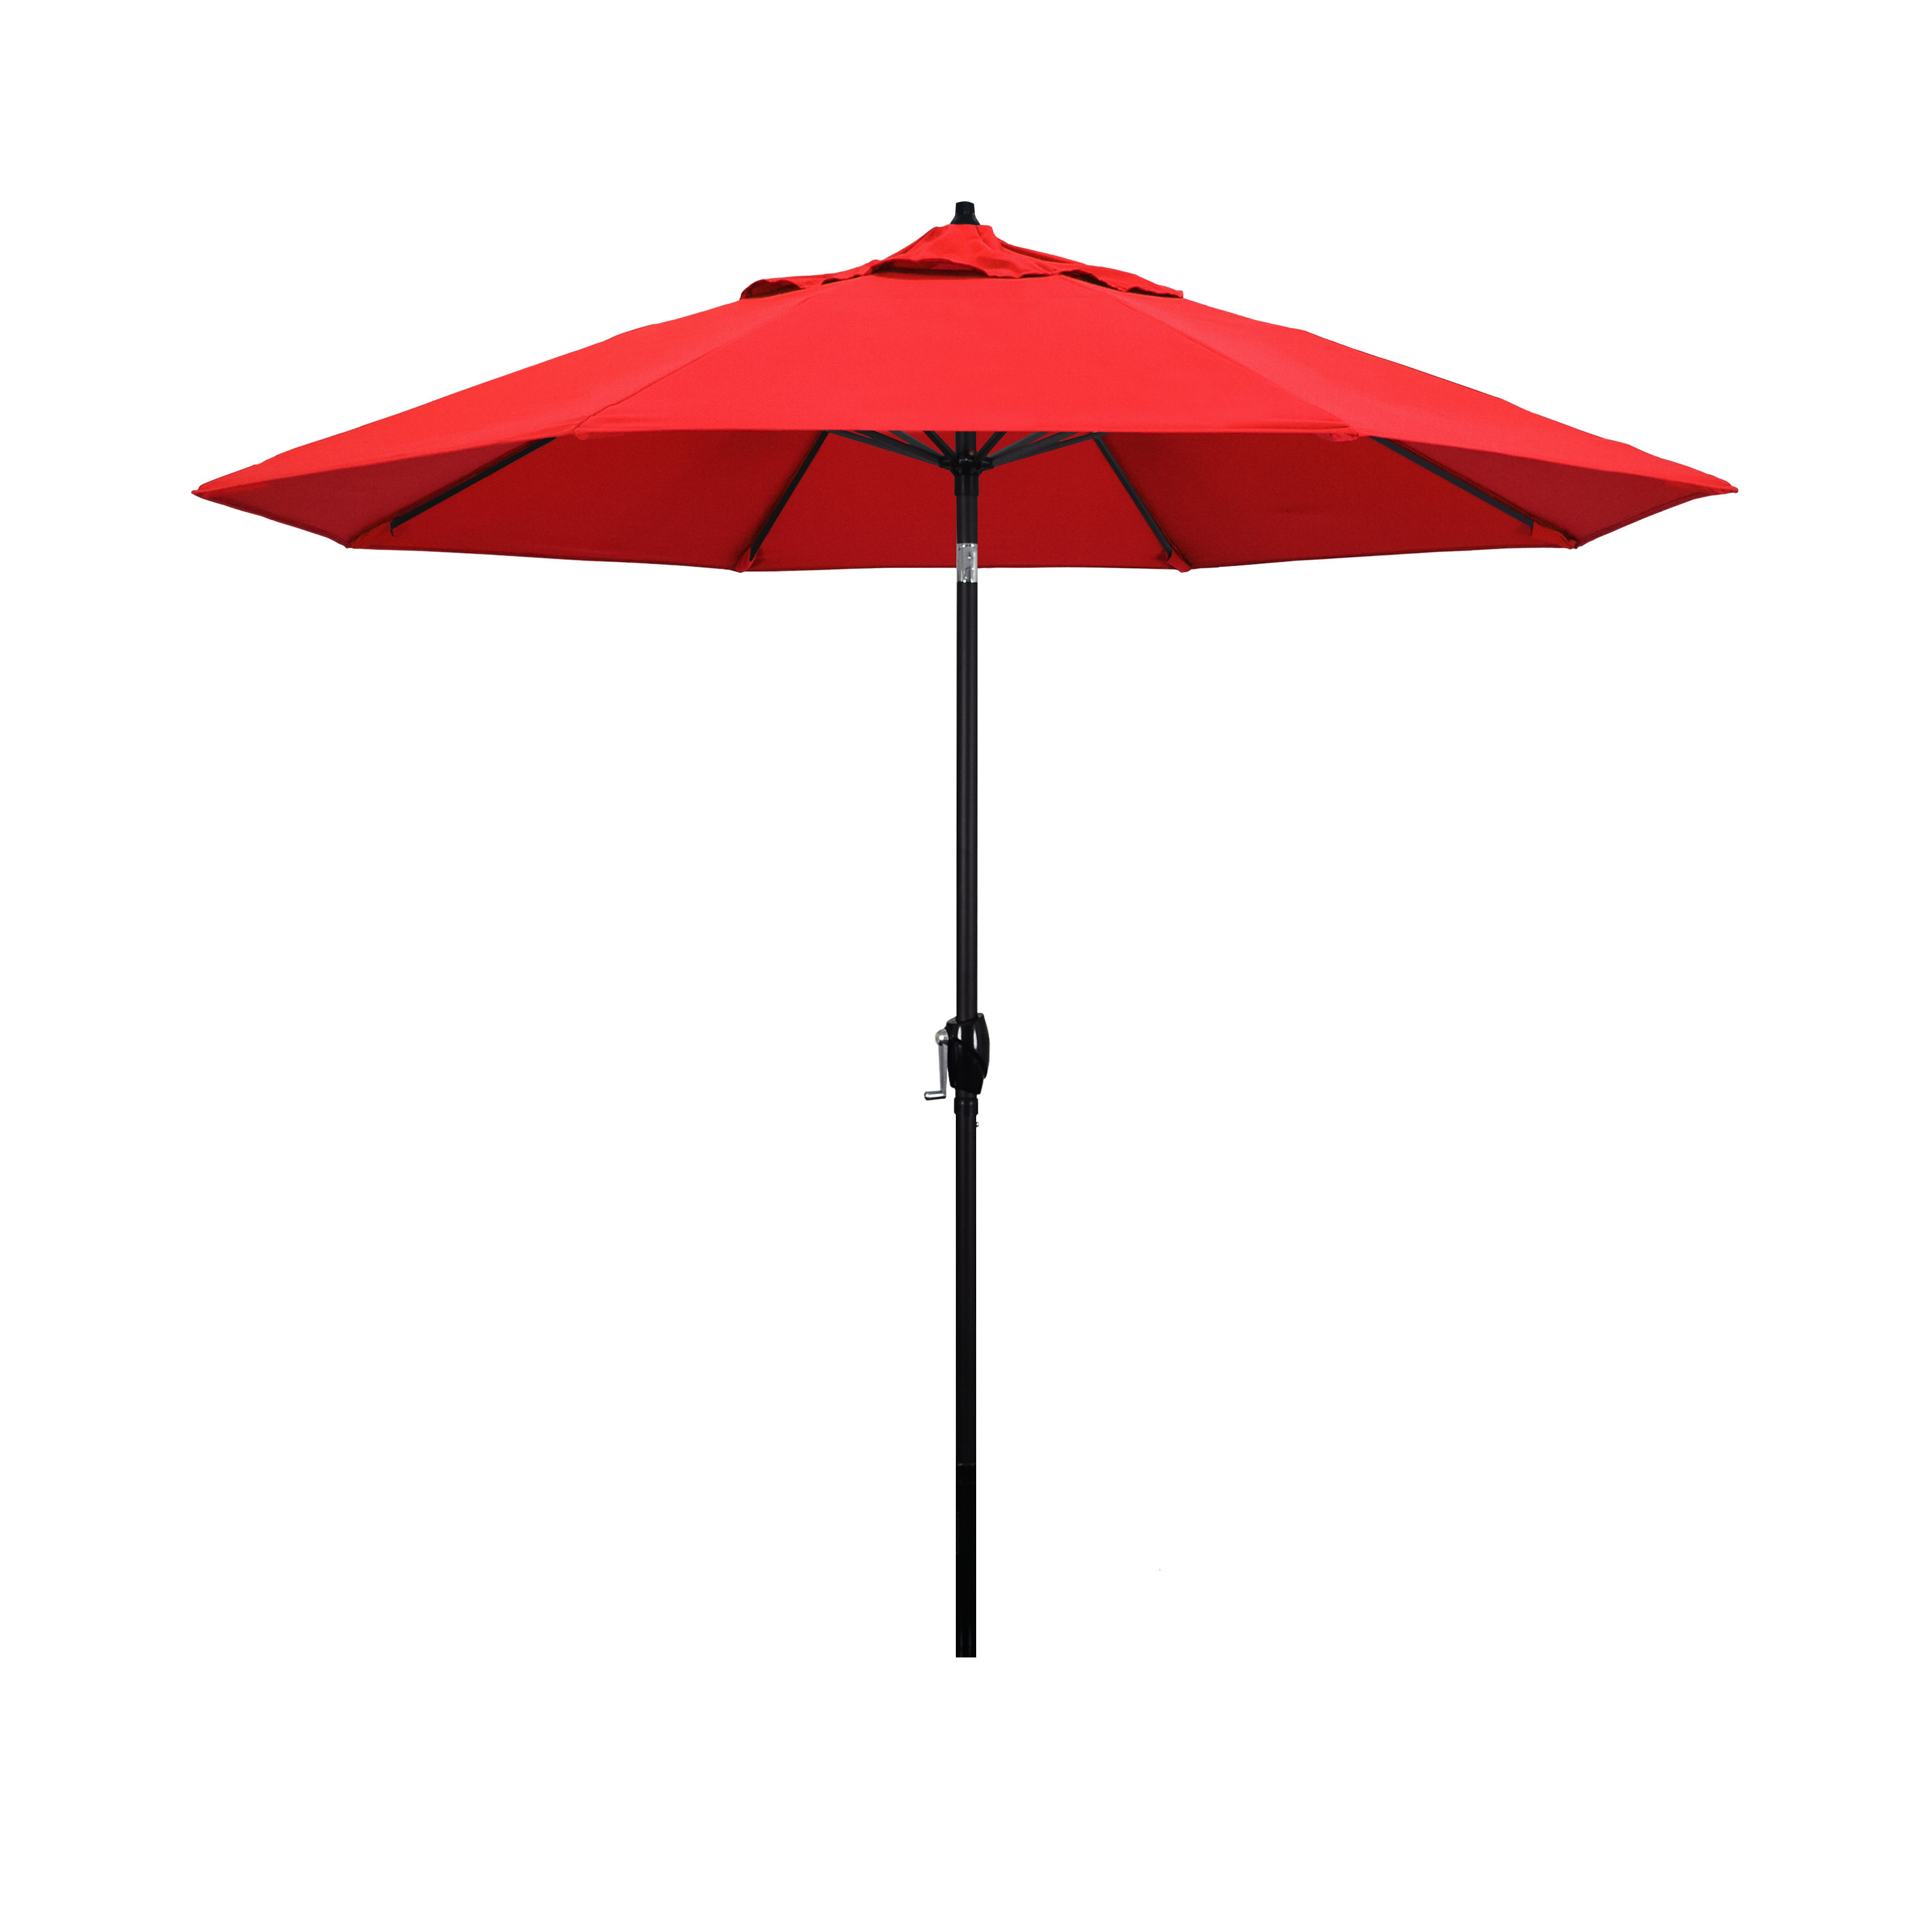 9' Market Sunbrella Umbrella With Regard To Preferred Caravelle Square Market Sunbrella Umbrellas (View 3 of 20)